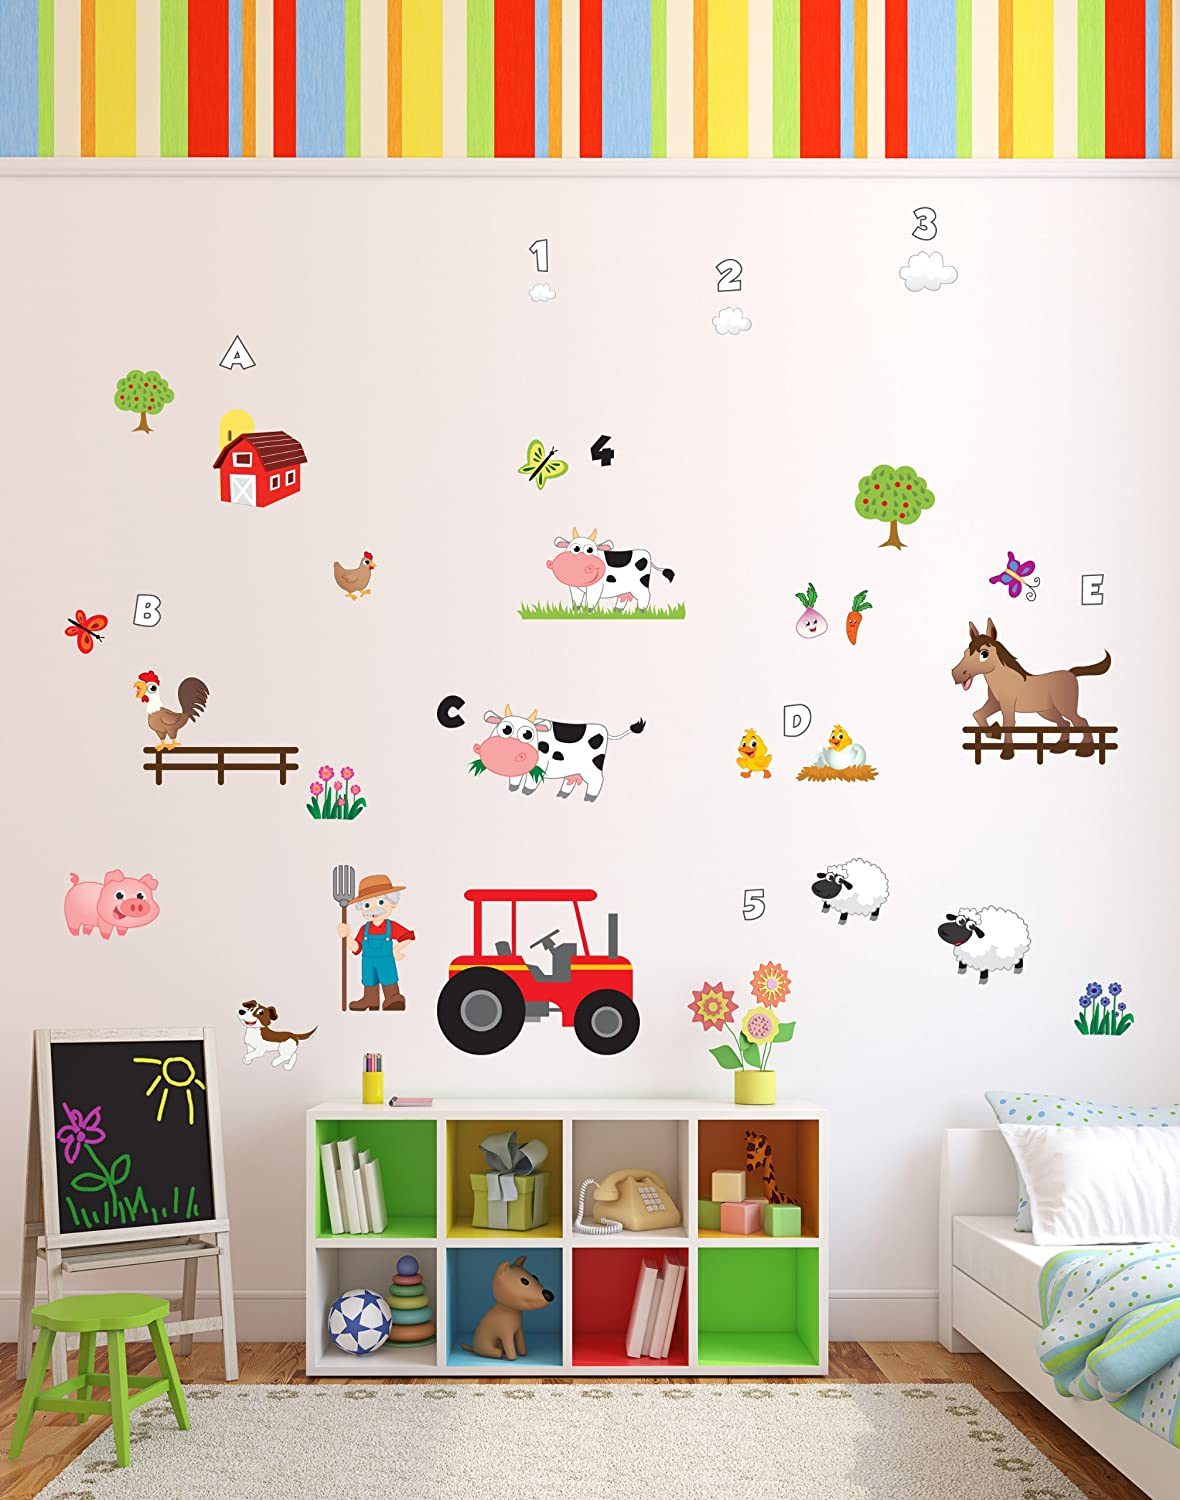 Fun U0027Old MacDonald Had A Farmu0027 Animals Nursery Rhyme Wall Stickers / Wall  Decals Which Come To Life In Childrens Bedrooms, Kids Playrooms And Baby  Nursery ... Part 19